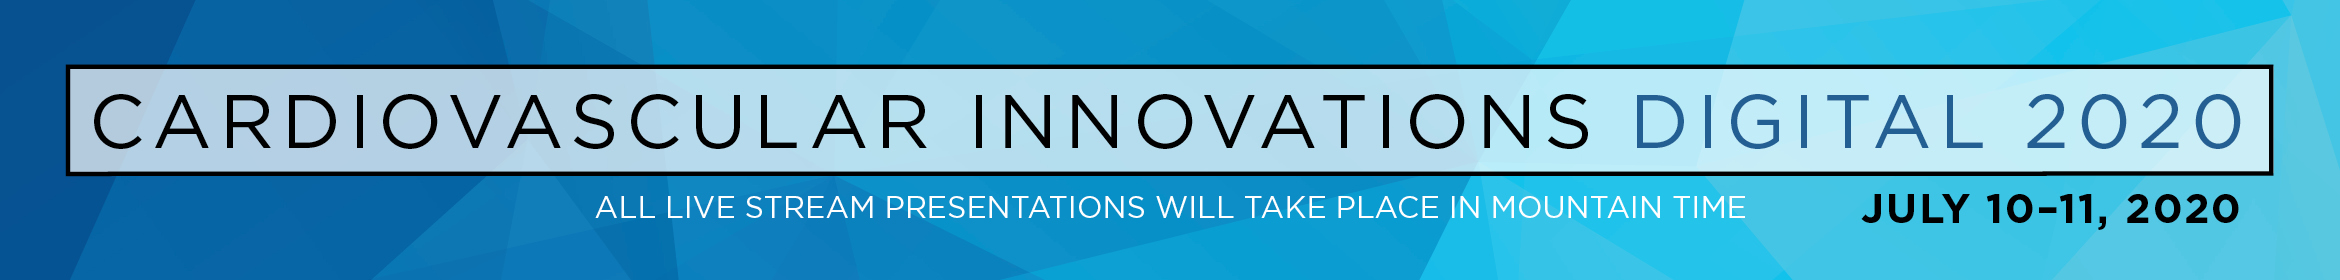 Cardiovascular Innovations 2020 Main banner